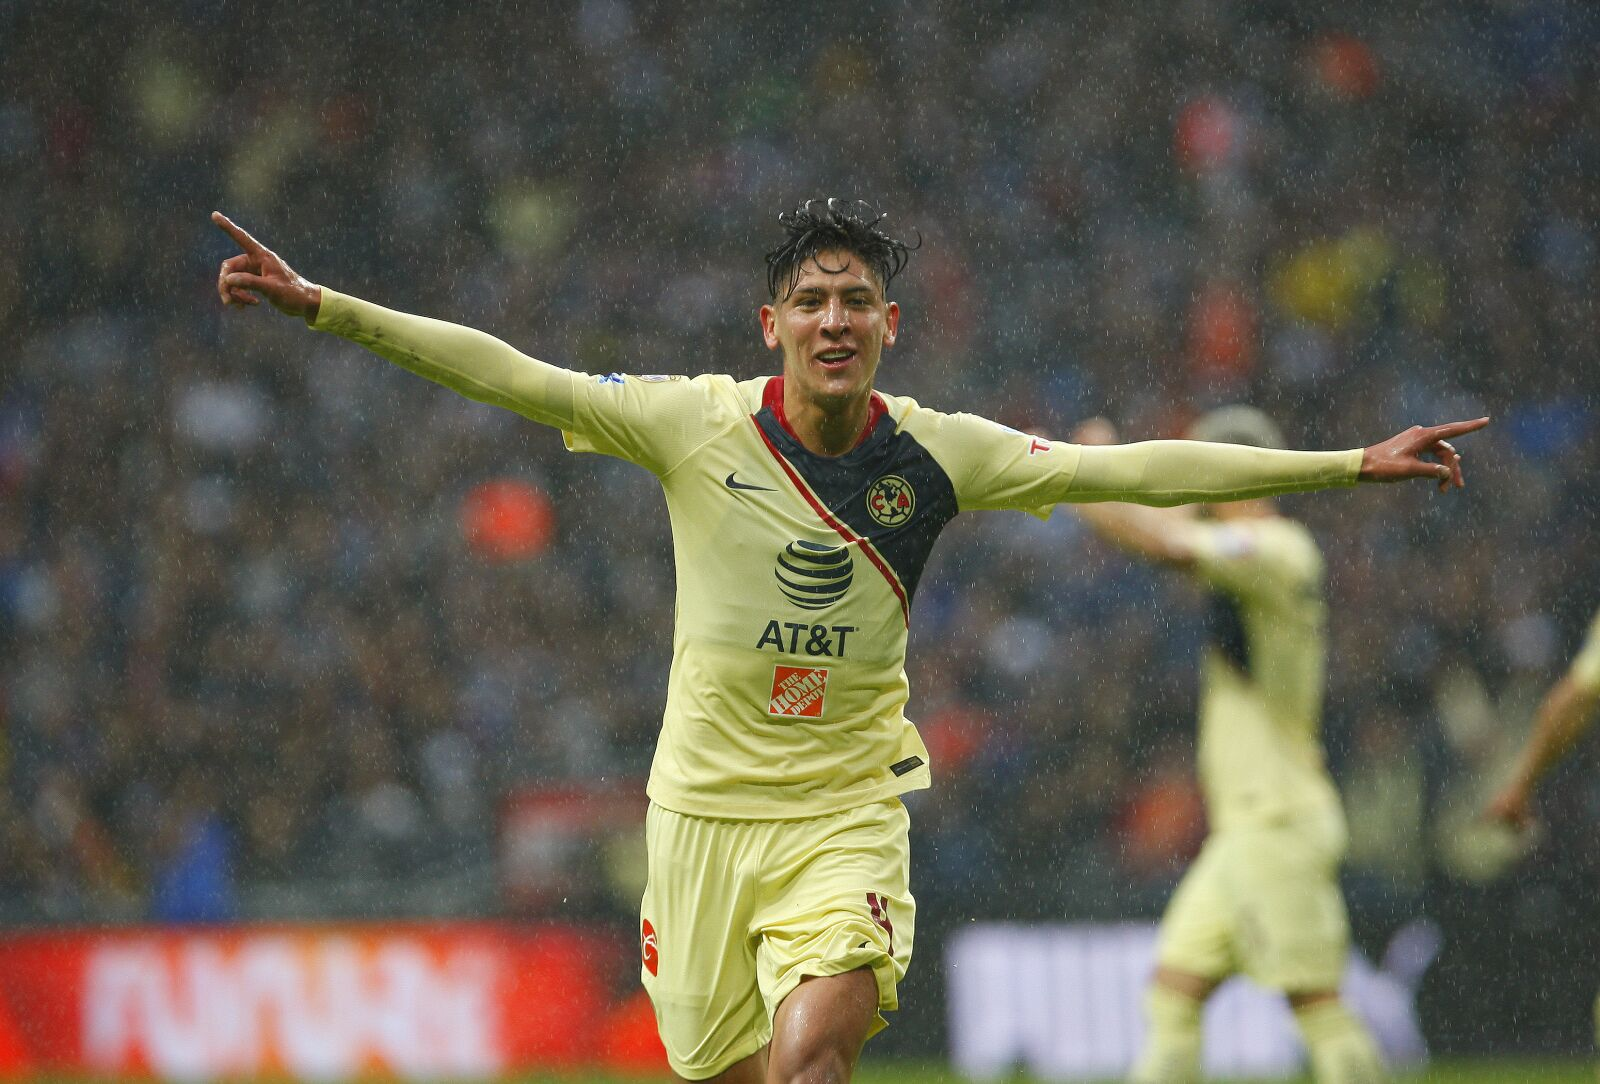 Liga MX: Edson to take one more bow with América before leaving?